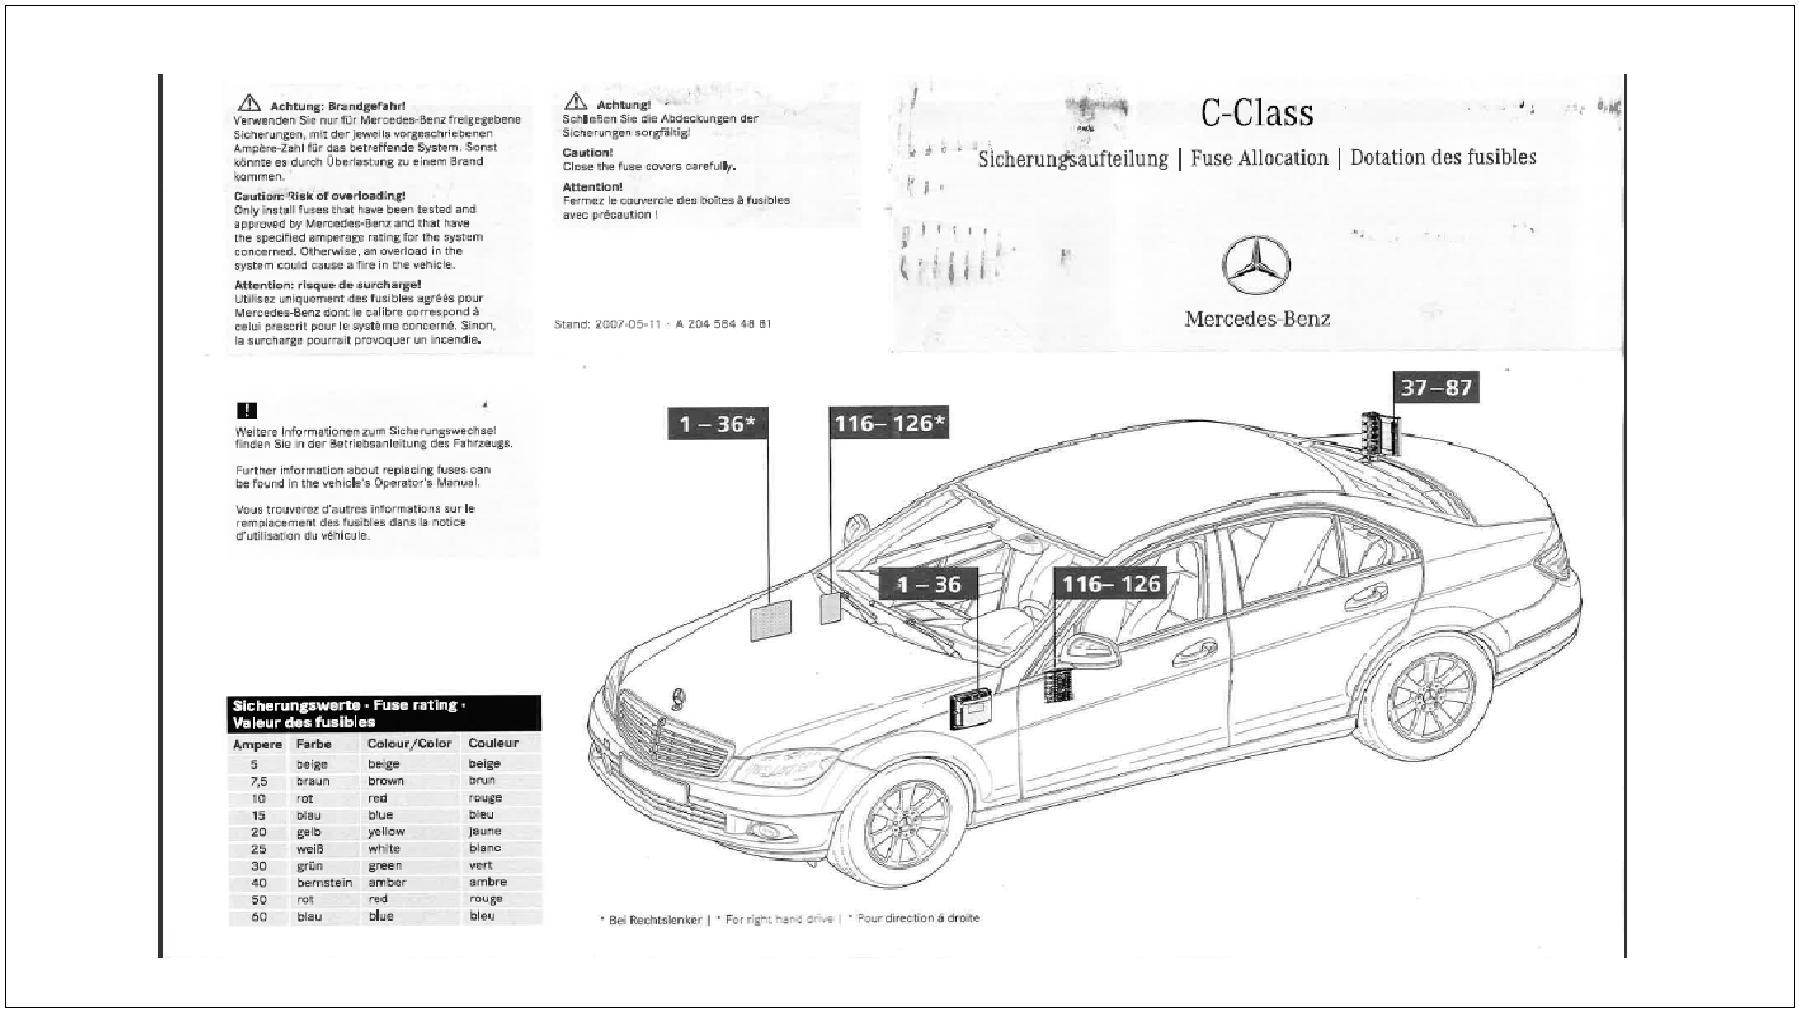 hight resolution of 2007 mercedes benz 4matic fuse diagram manual e book 2007 mercedes benz 4matic fuse diagram